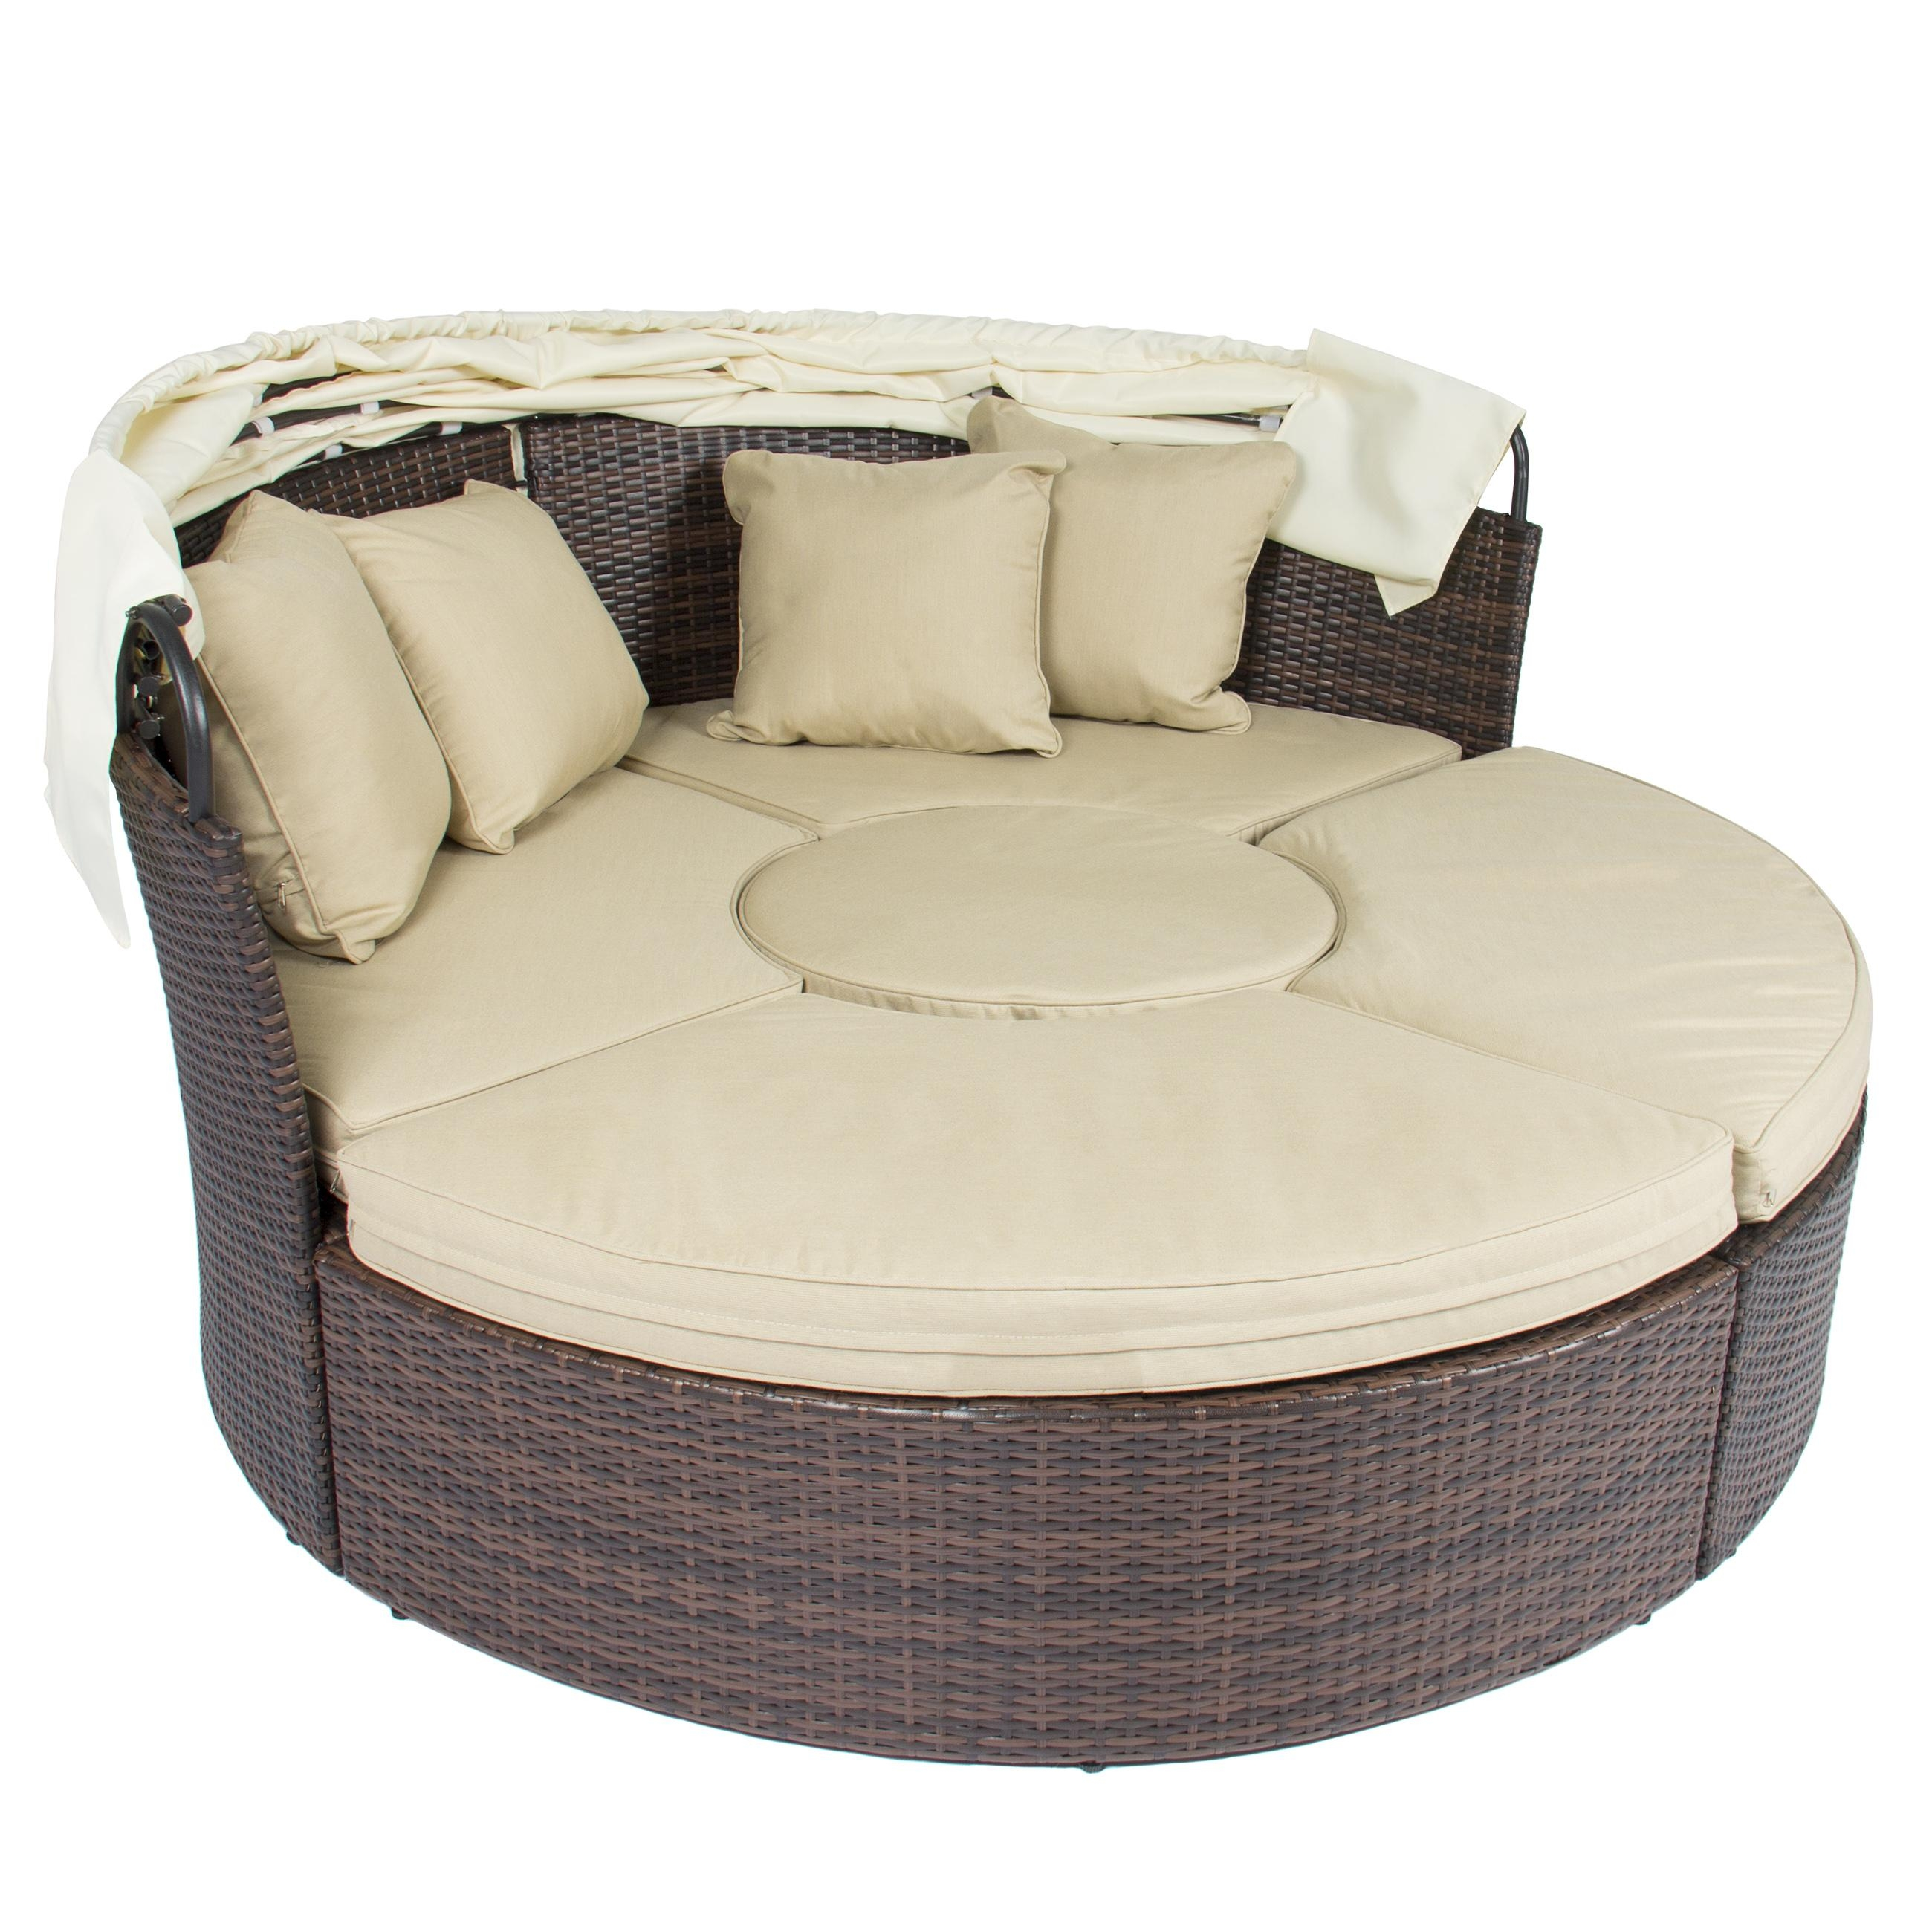 Outdoor Patio Sofa Furniture Round Retractable Canopy Daybed Brown For Circle Sofa Chairs (View 11 of 20)